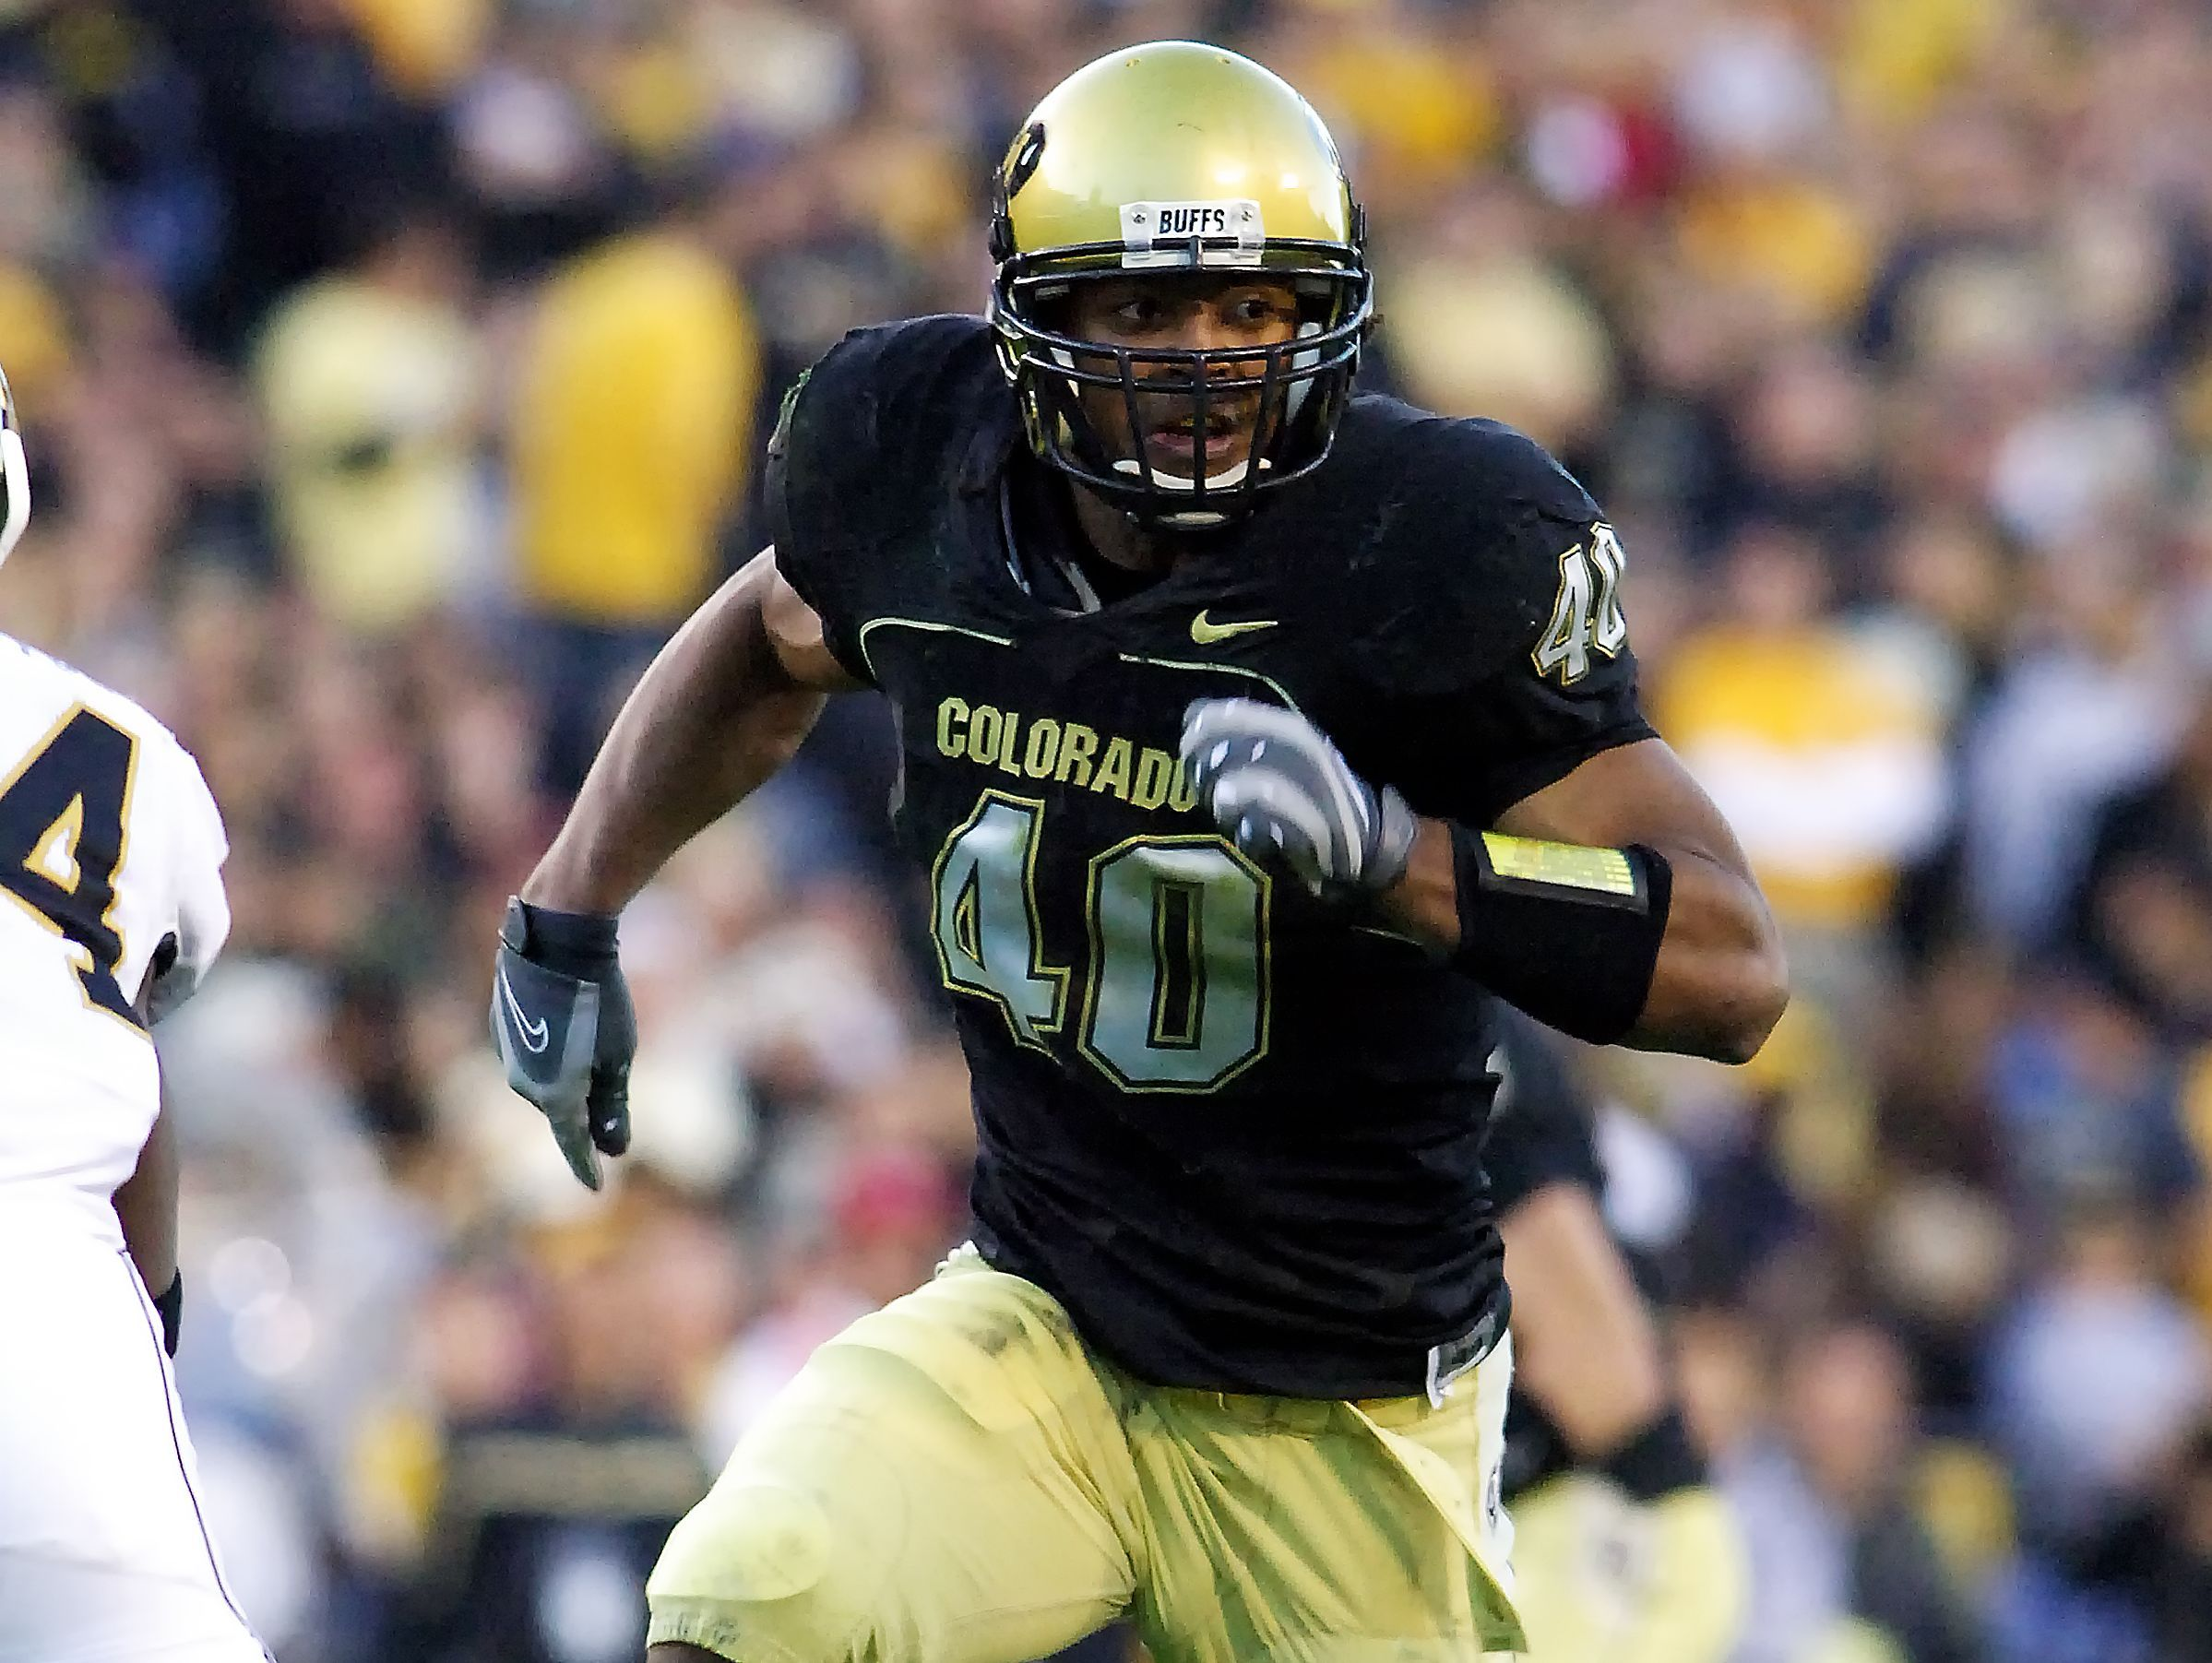 After thriving at East Lansing, Brad Jones excelled at Colorado before going on to the NFL.